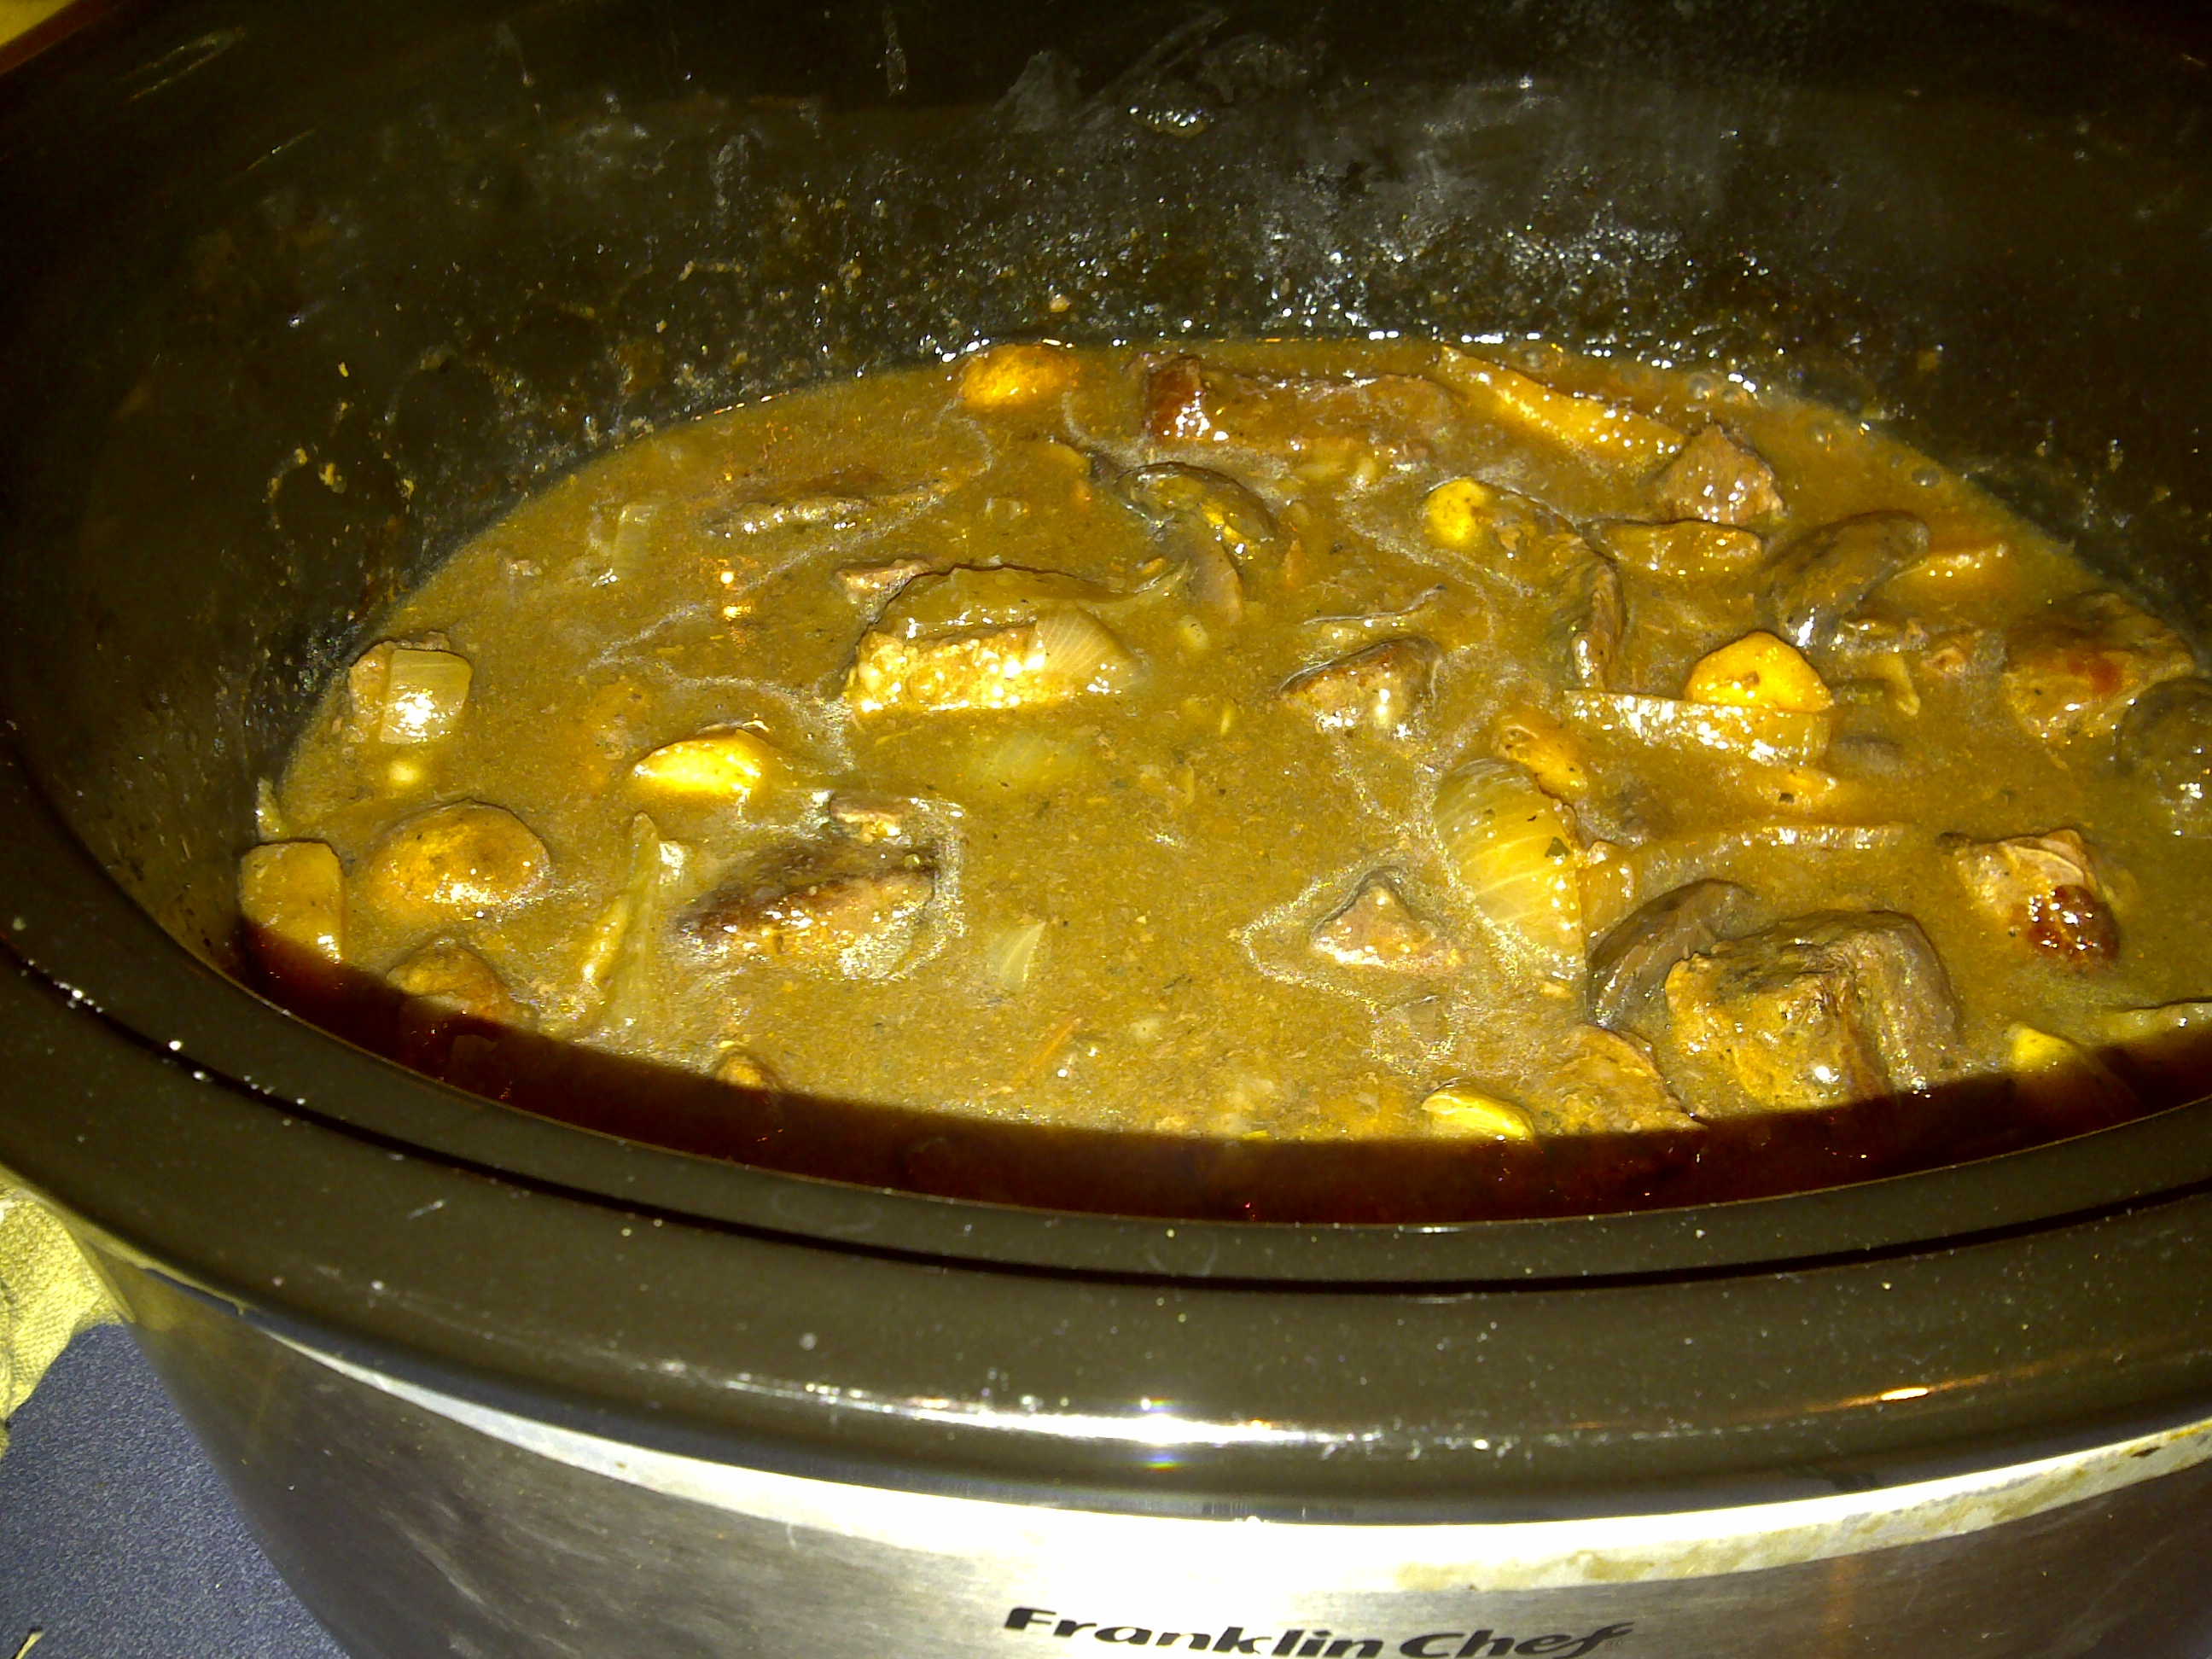 Beef Stew with Mushrooms, parsnips, and wine: cooked and ready to eat